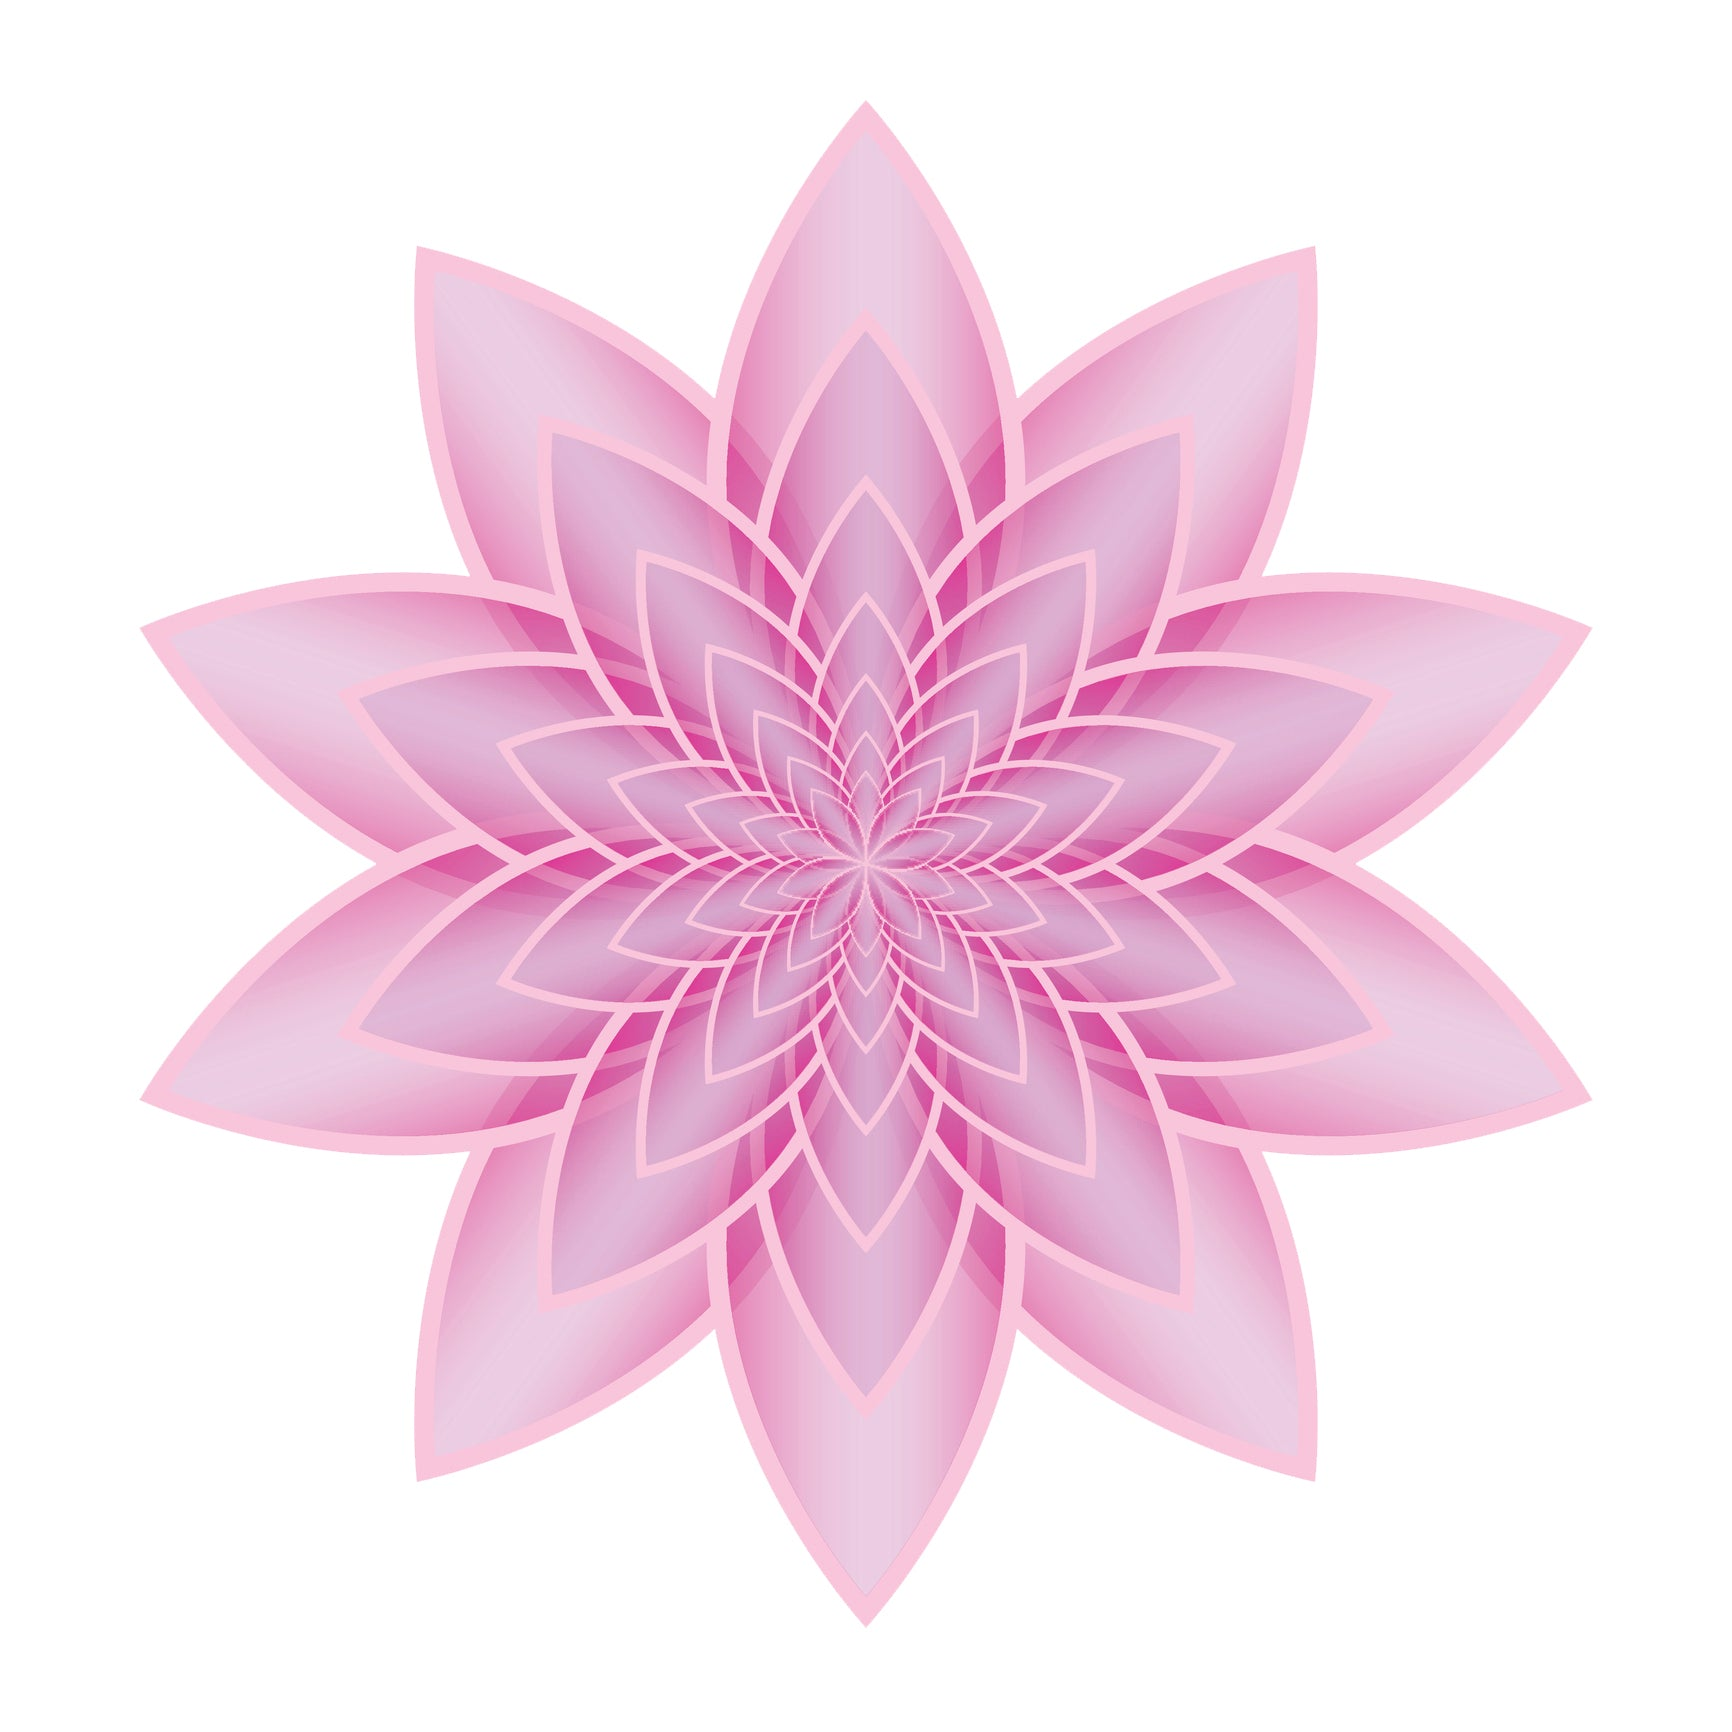 Pretty Ombre Pink Optical Illusion Lily Lotus Flower Icon Vinyl Decal Sticker